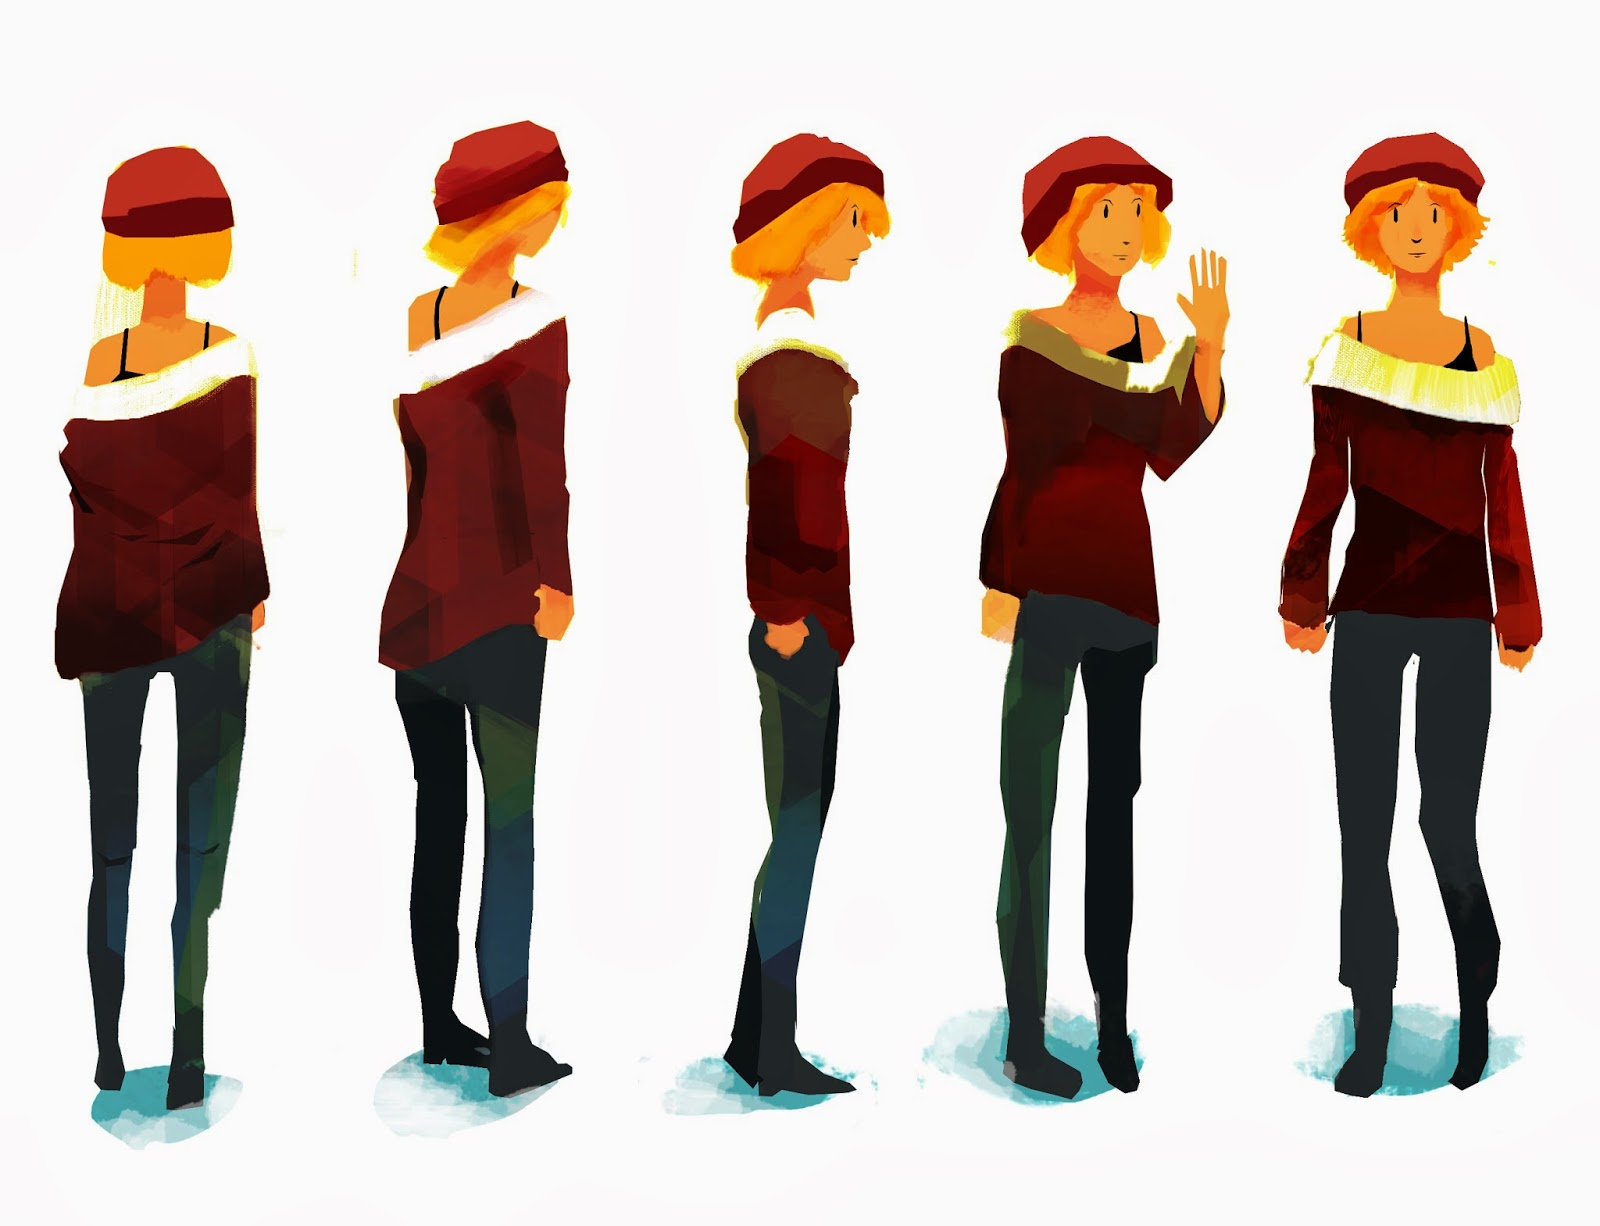 Character Design Principles : Marcus bowler sketches and illustrations march